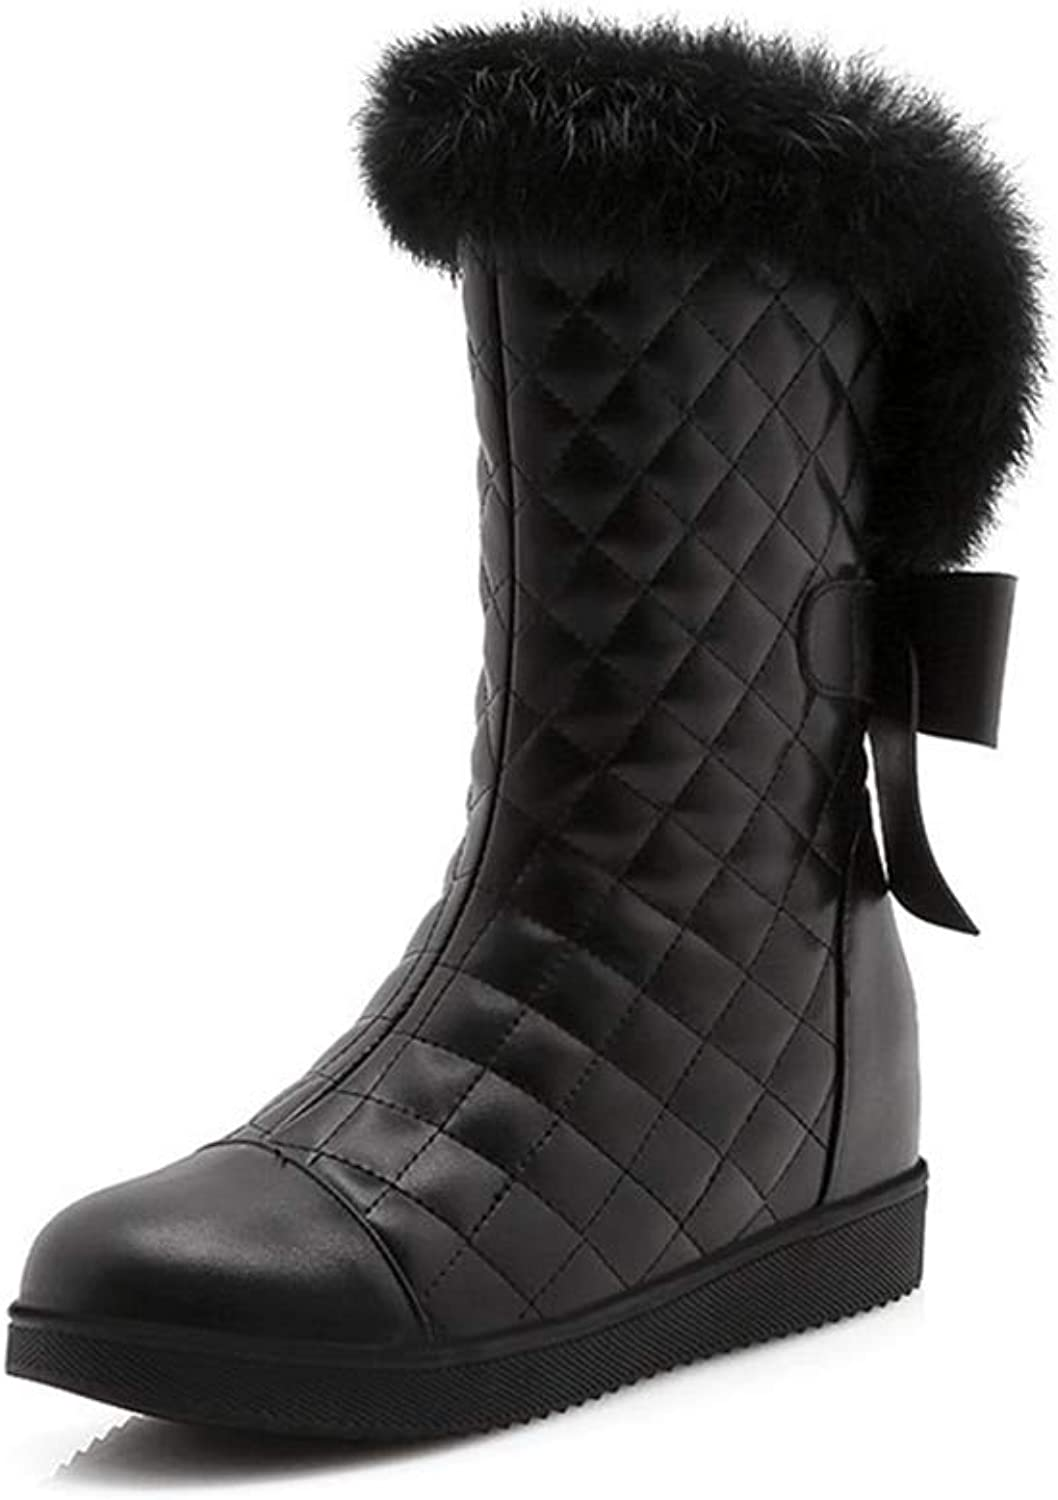 Winter Mid Calf Boots Winter Faux Hidden Heel Ladies Snow Warm Fashion shoes Round Toe Casual Outdoor shoes